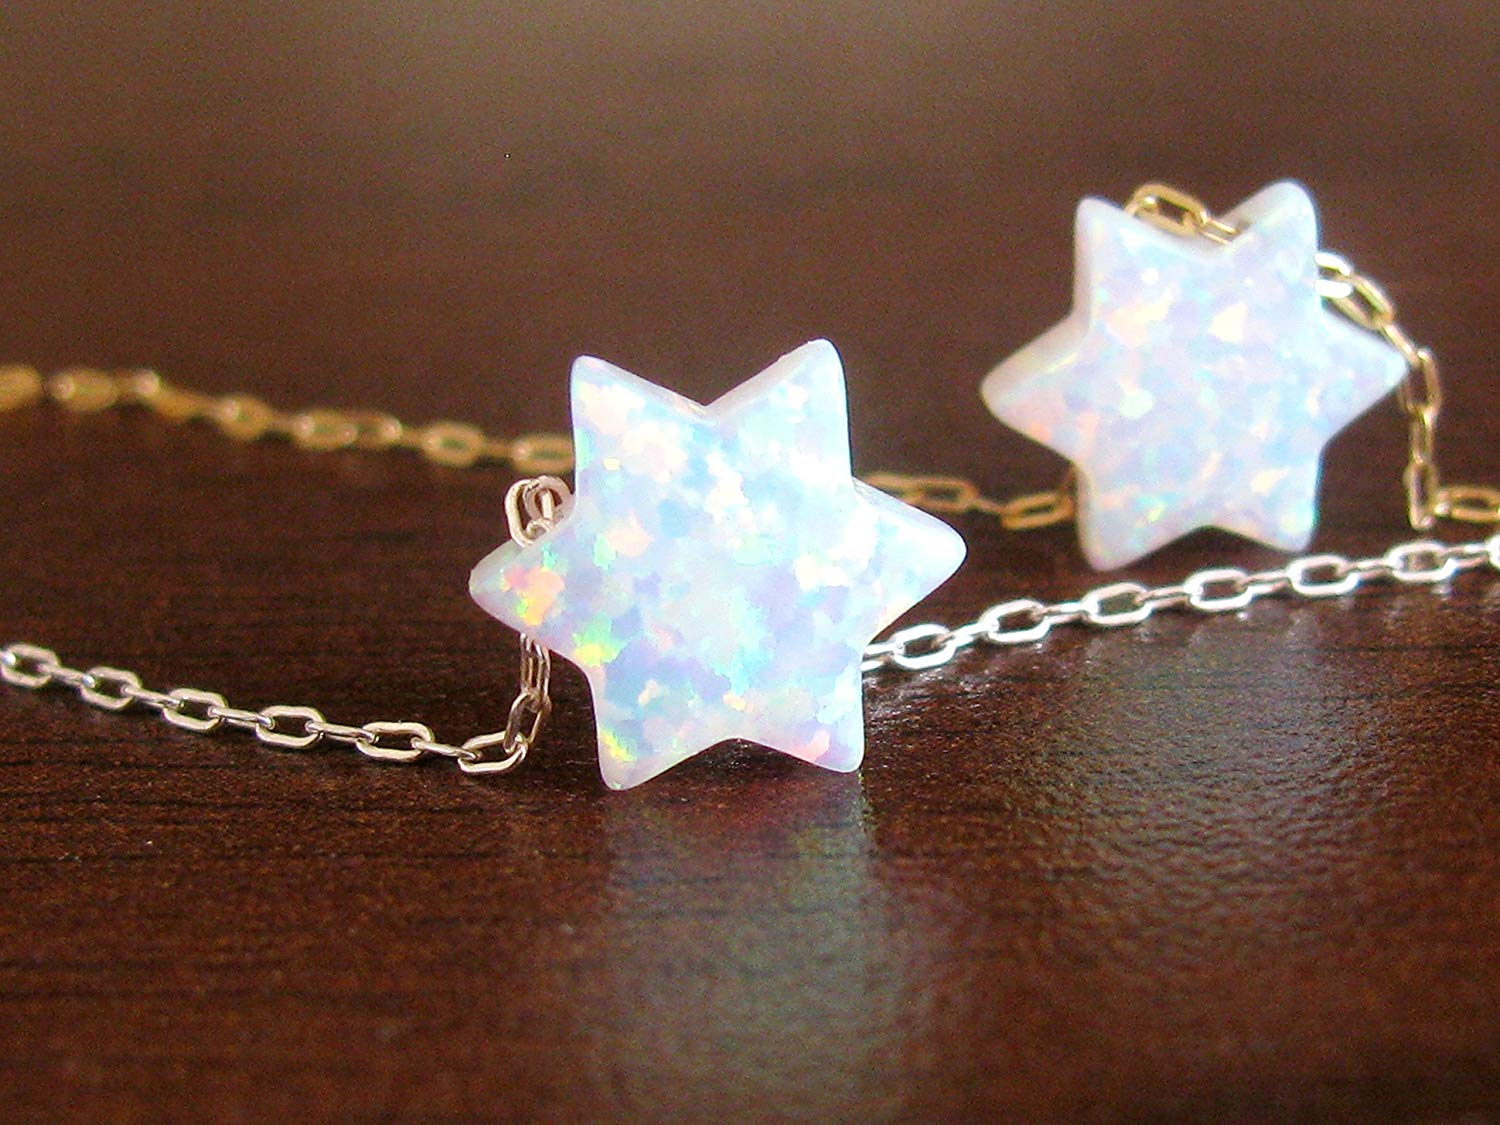 Opal necklace, Star of David necklace, gold necklace, opal bead necklace, opal jewelry, Jewish star, Jewish jewelry, Star of David, white opal